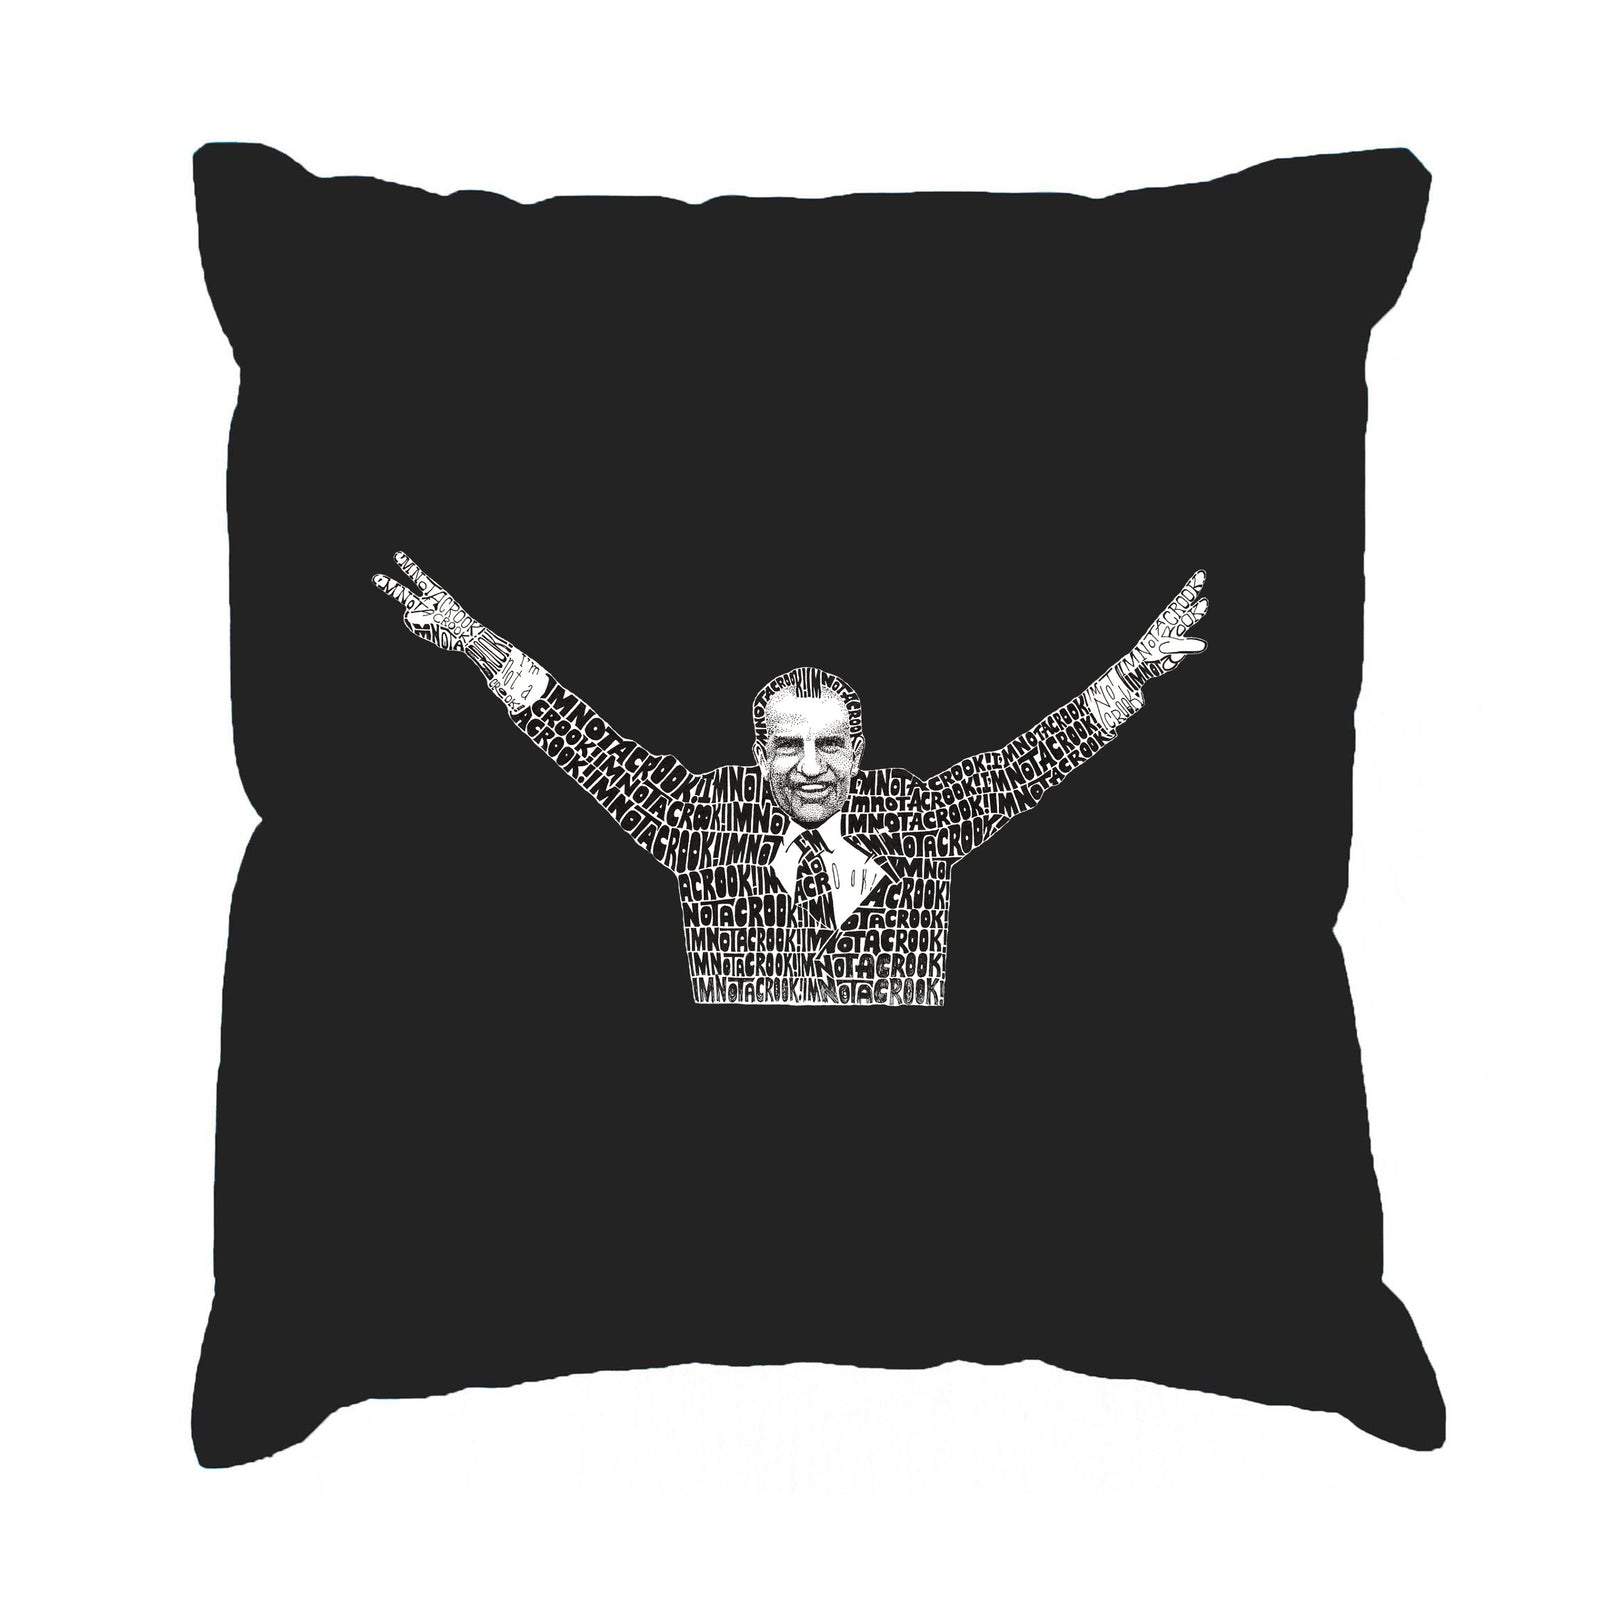 Throw Pillow Cover - I'M NOT A CROOK